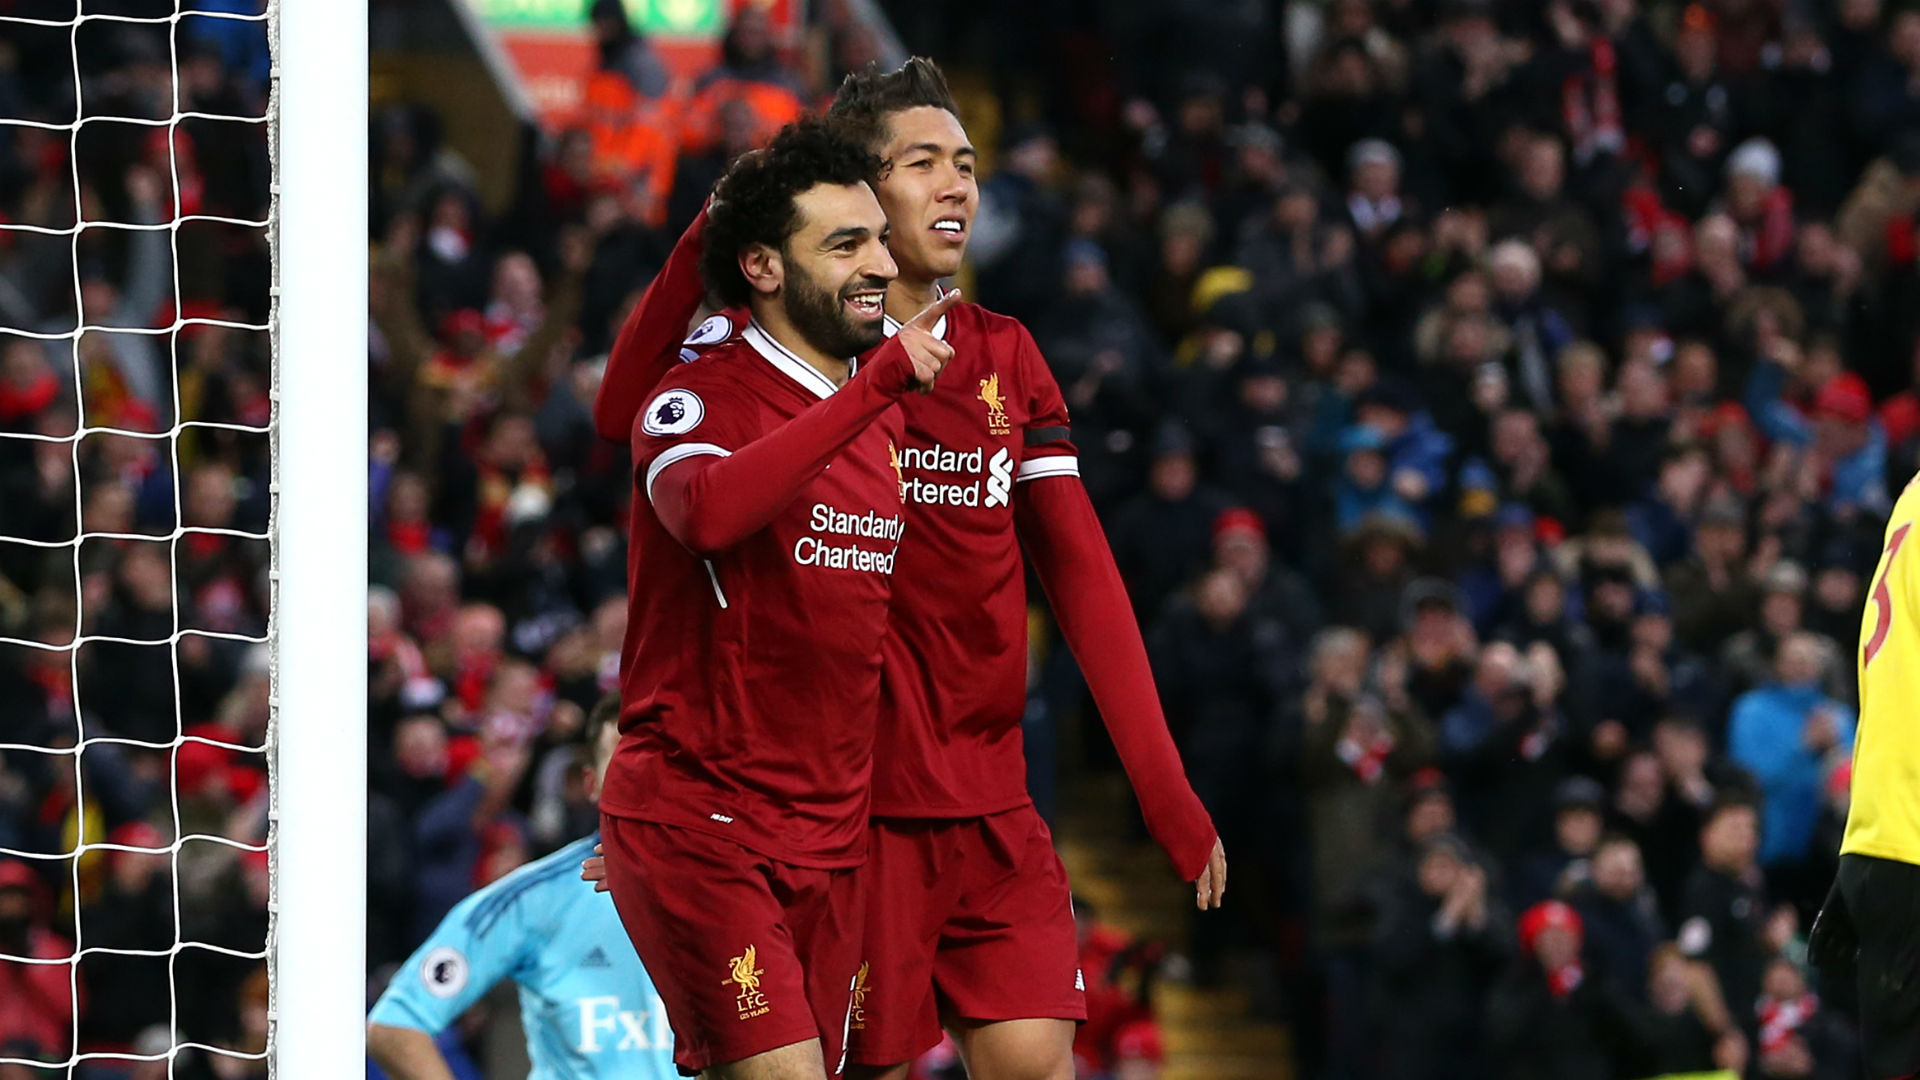 Premier League top scorers 2017-18: Mohamed Salah wins Golden Boot ahead of Harry Kane | Goal.com